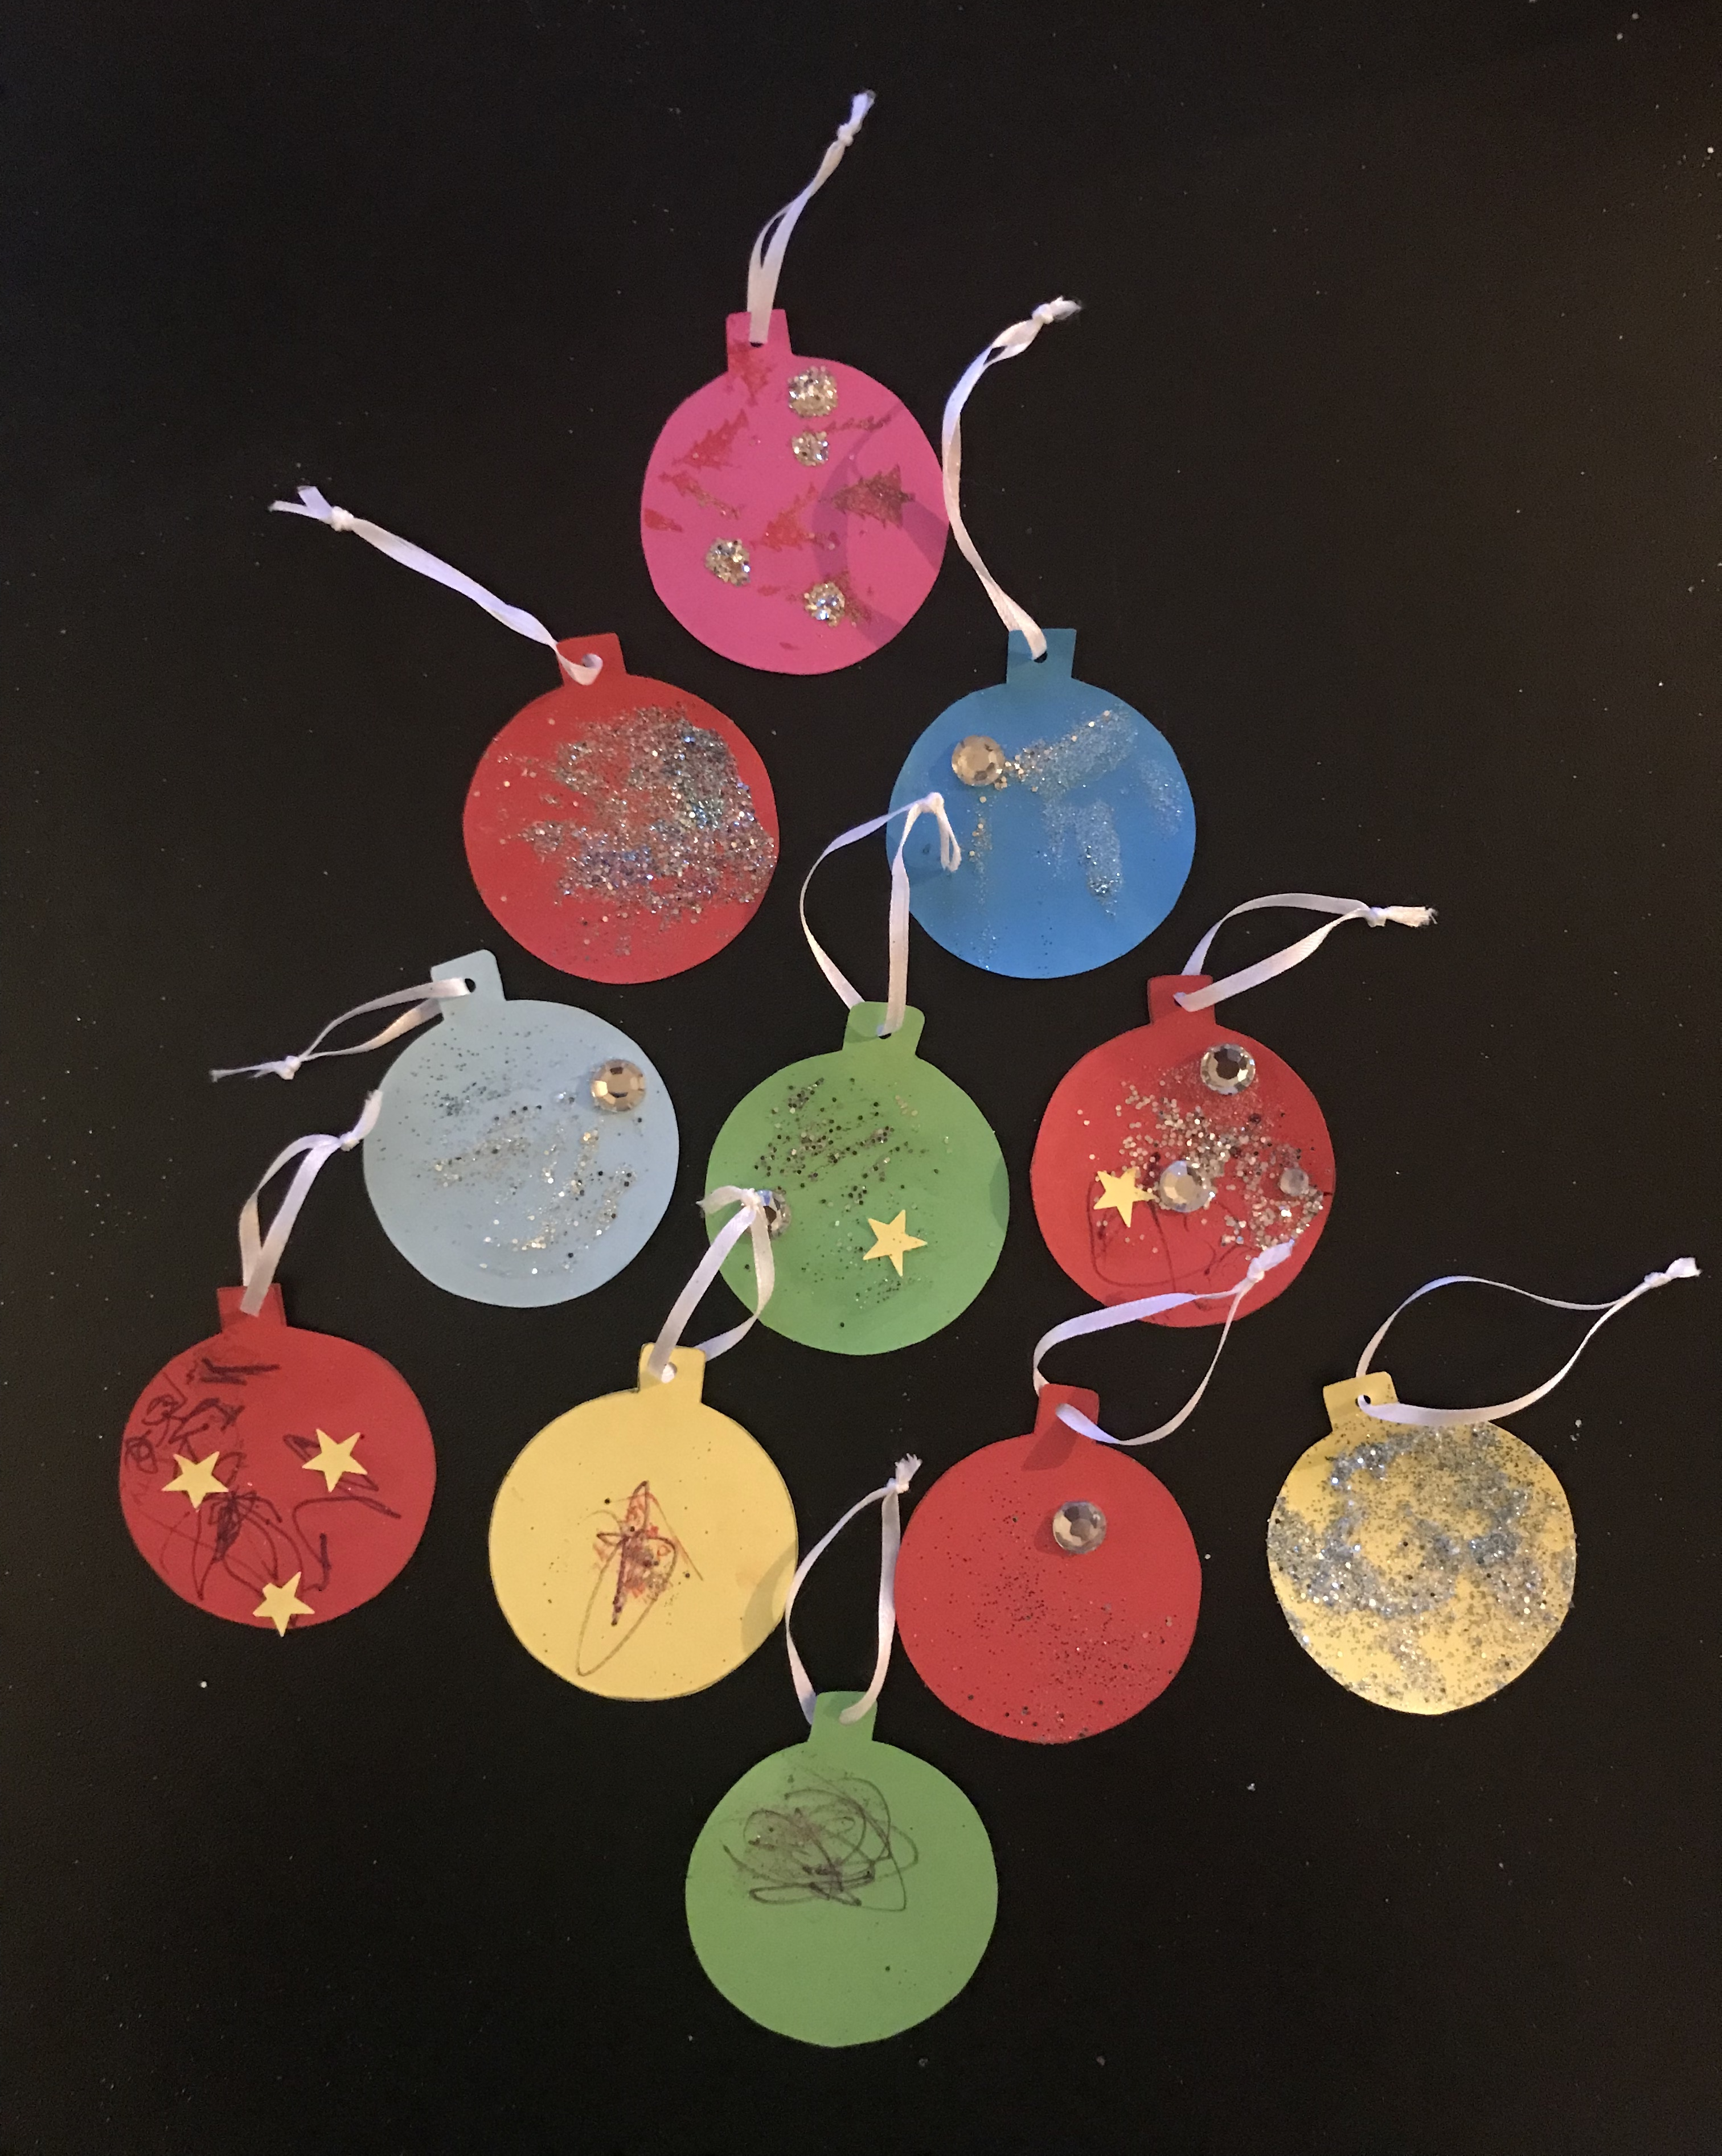 Completed Christmas tags layed out in the shape of a tree